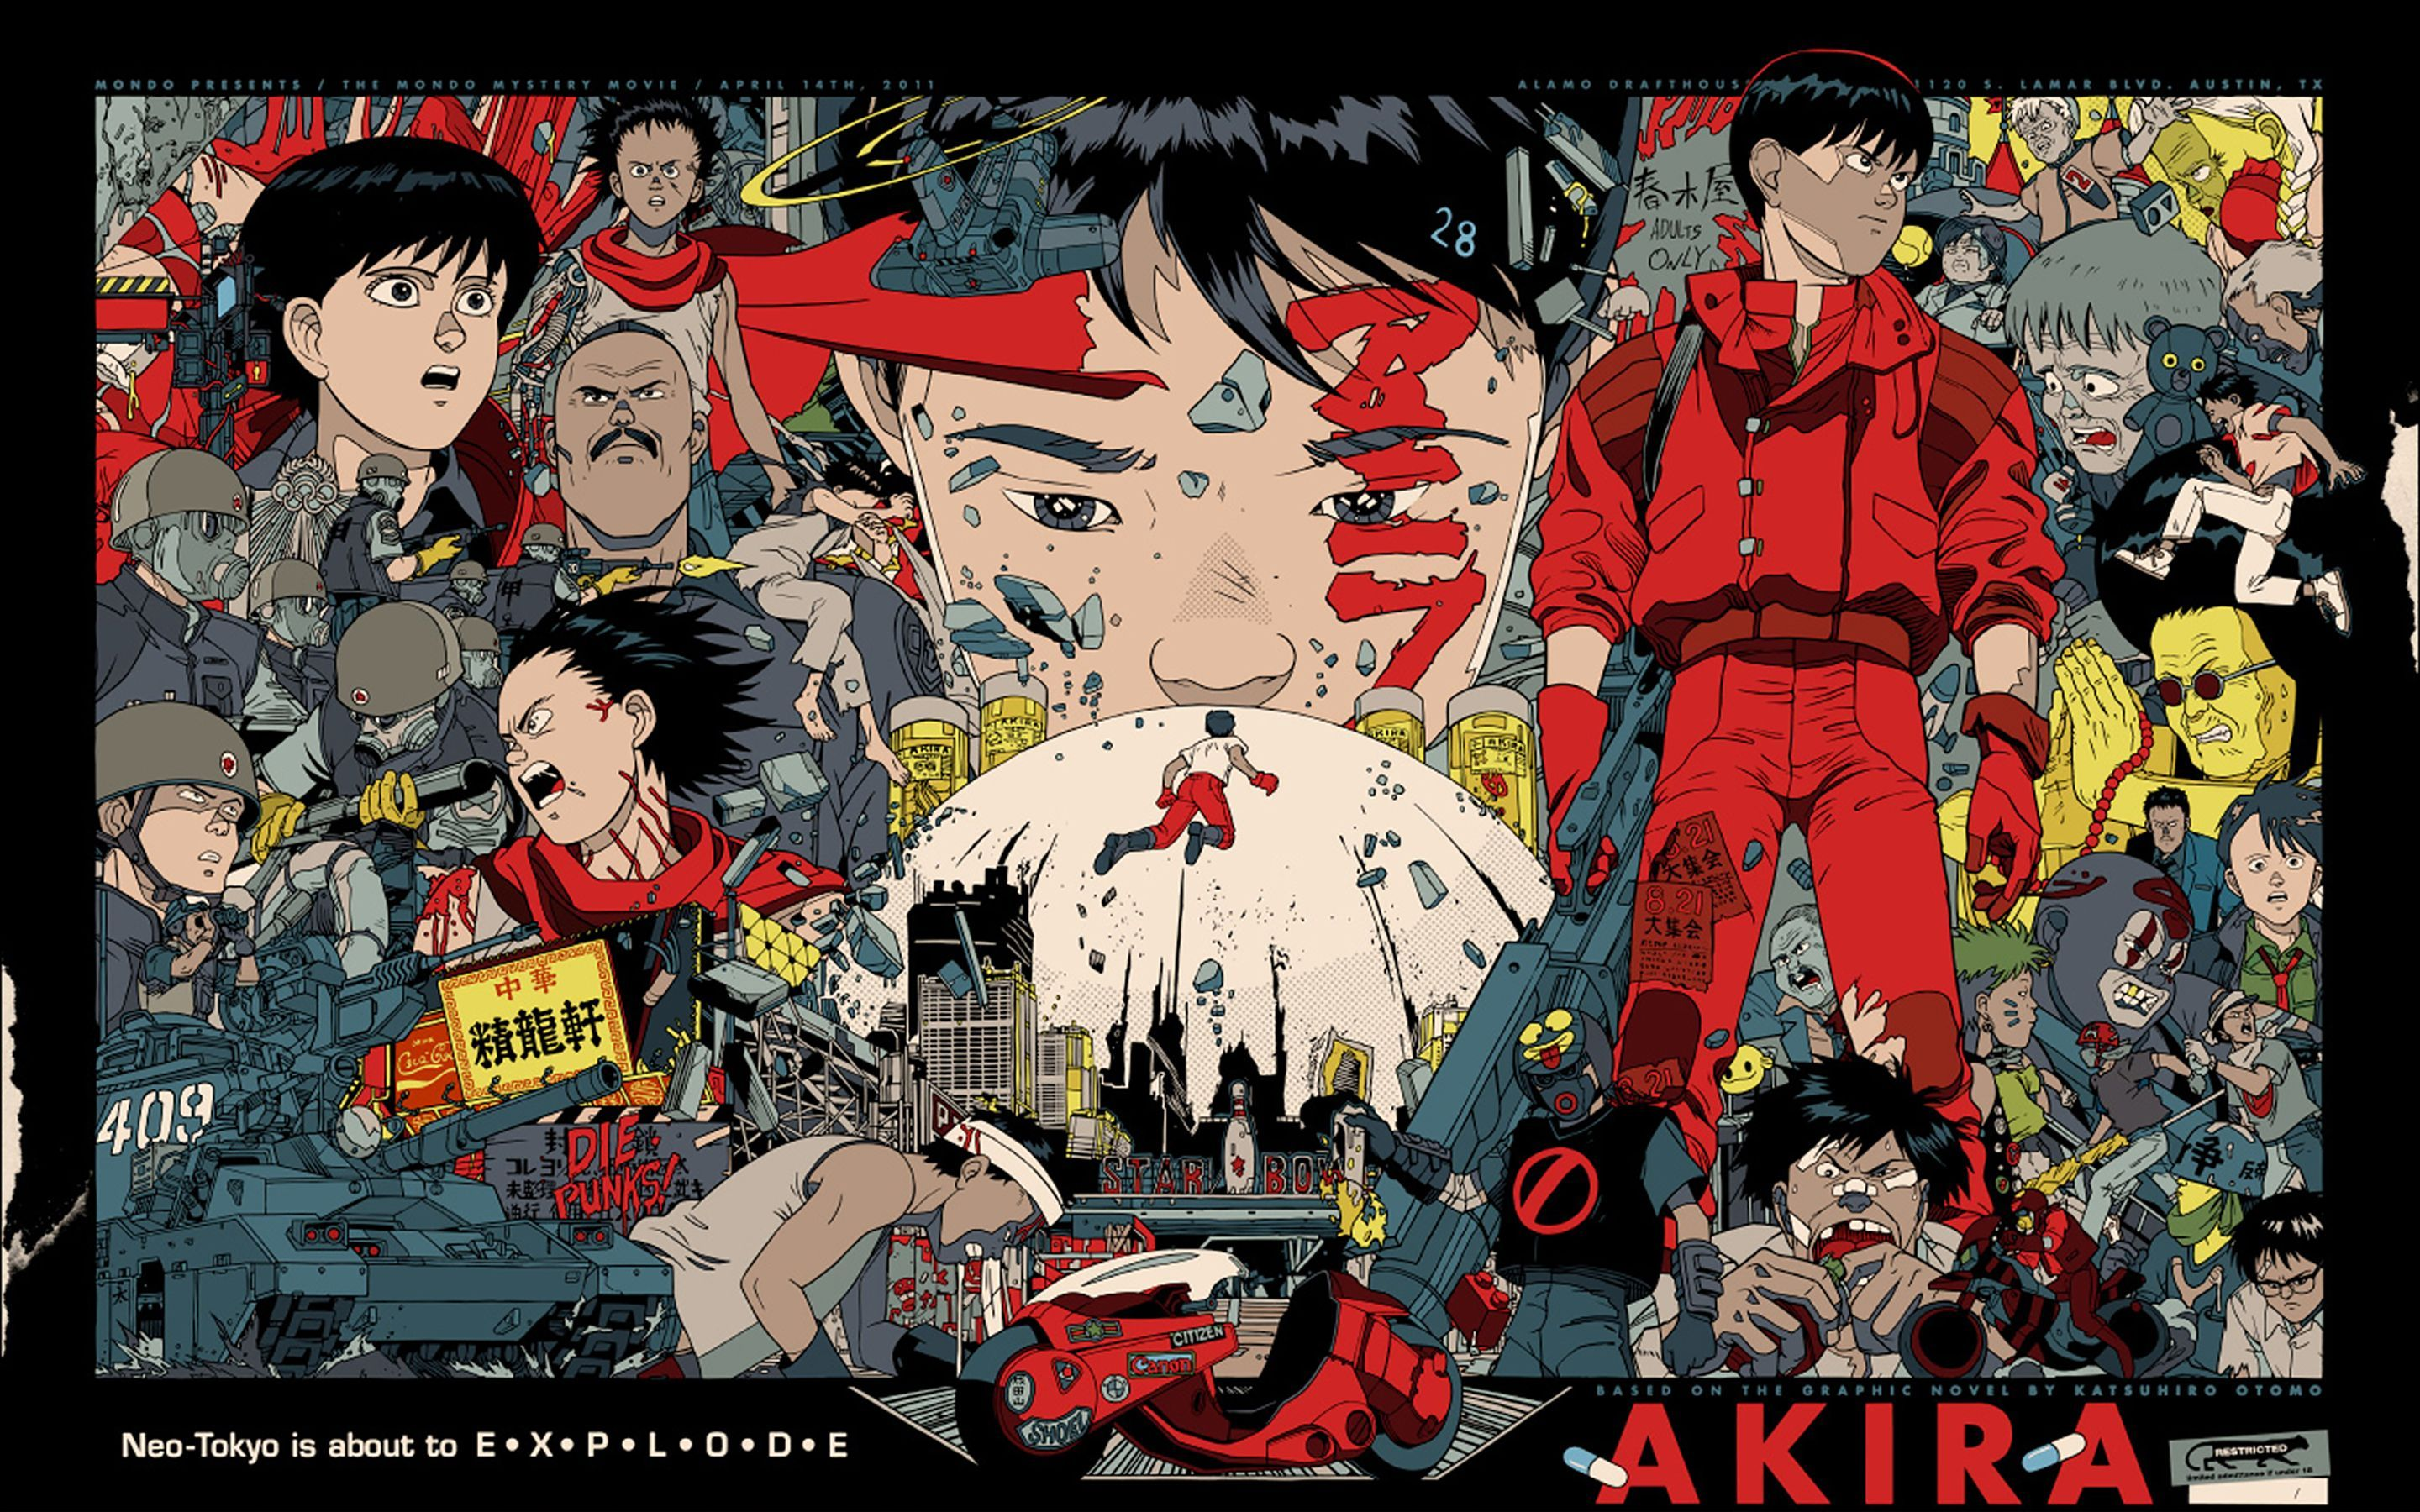 2880x1800 AKIRA – アキラ | Free 2880x1800 Wallpapers for Retina | 大友克洋 ...